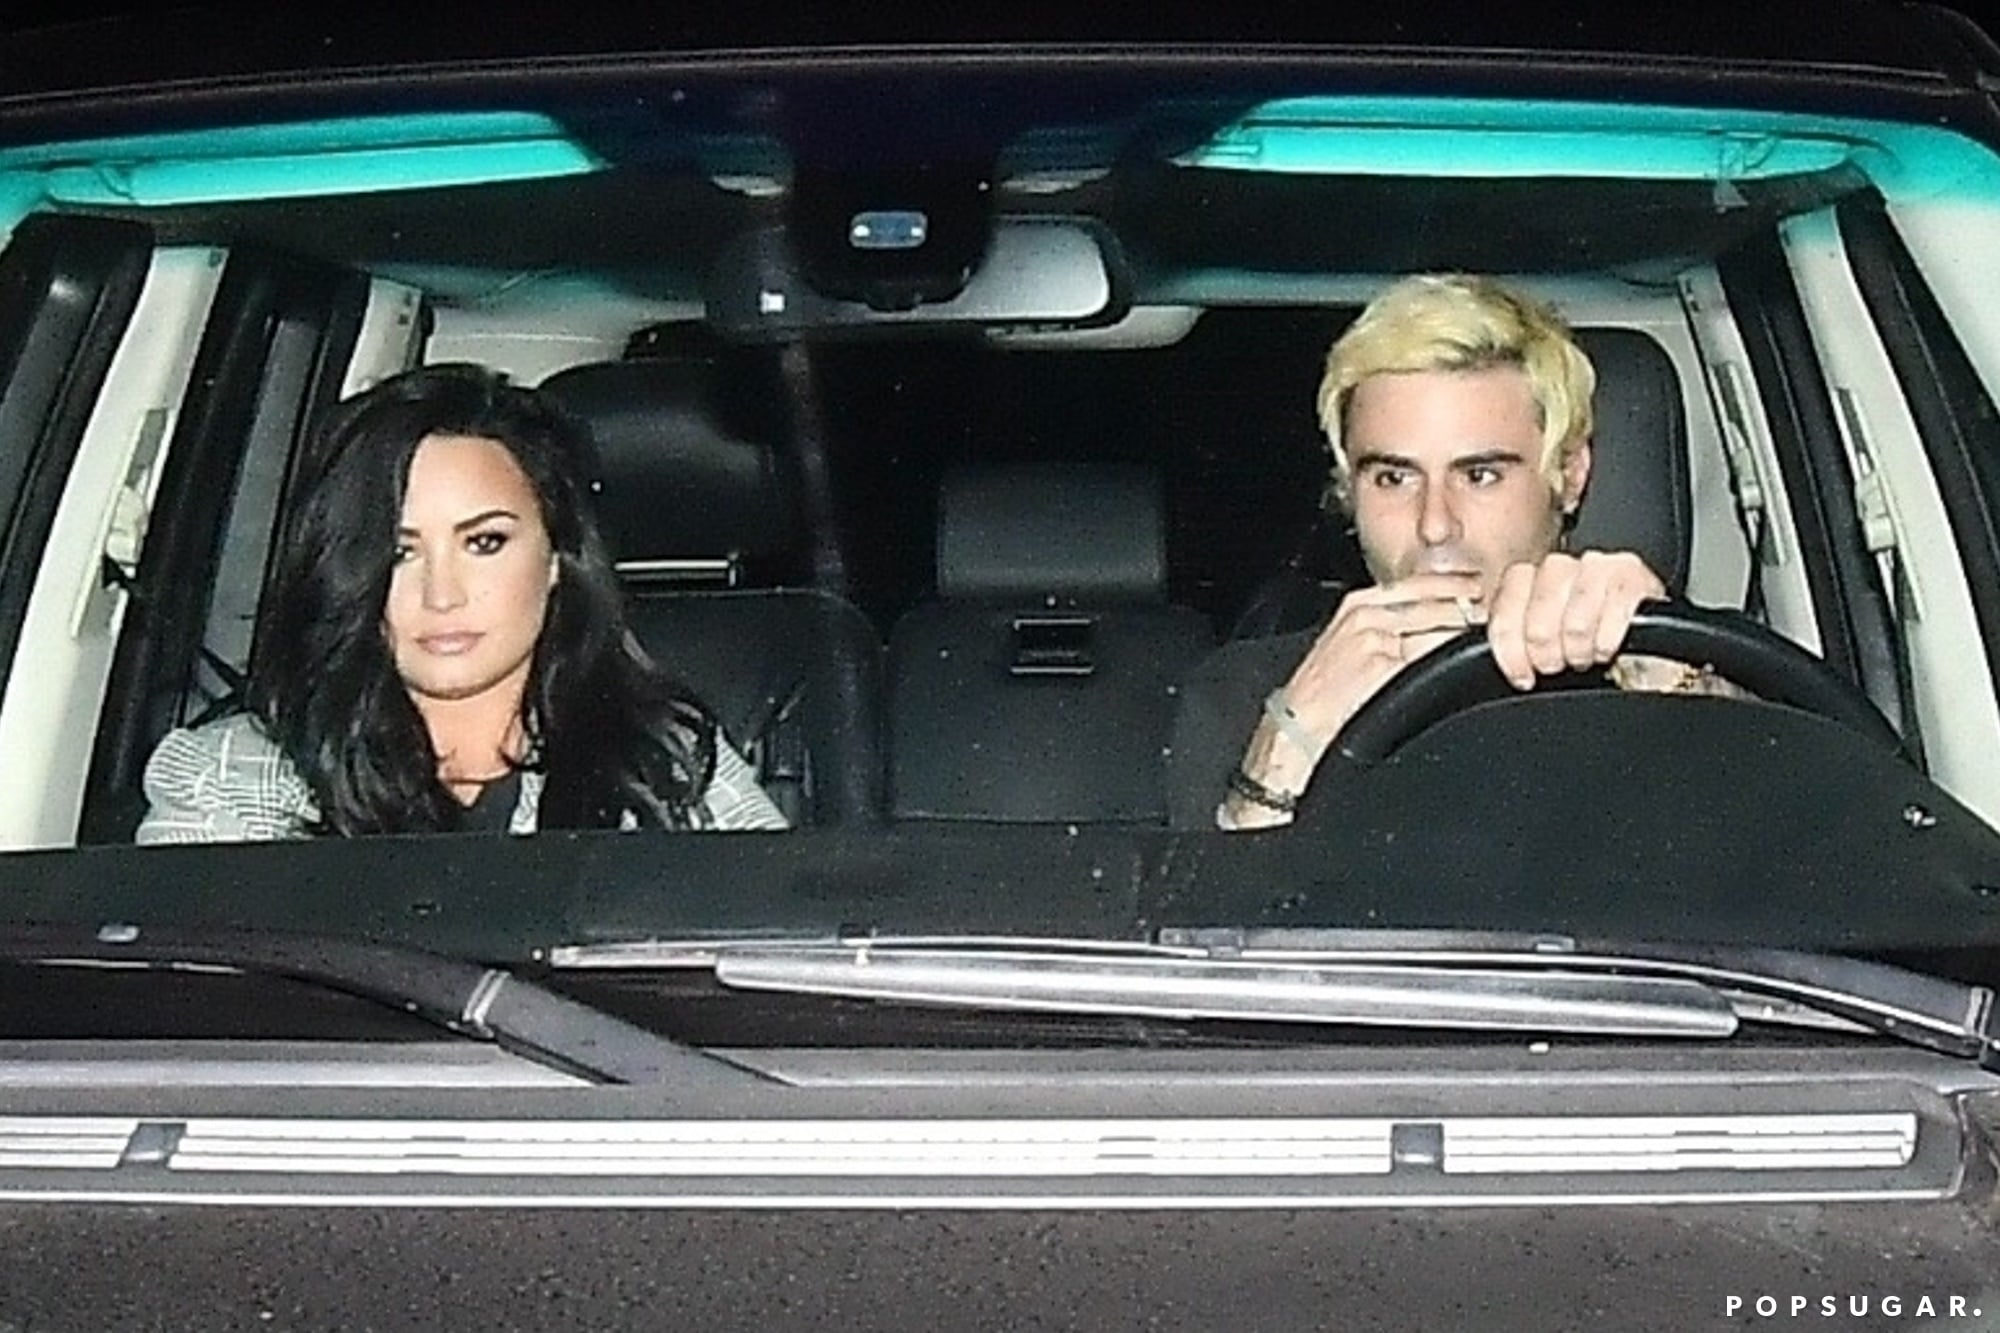 *PREMIUM-EXCLUSIVE* ** RIGHTS: WORLDWIDE EXCEPT IN ITALY ** Beverly Hills, CA  - **WEB EMBARGO UNTIL 8:00 AM PST ON 11/05/18** Demi Lovato is seen looking happy and healthy after dinner with Henry Levy at Matsuhisa in the 90210. The singer is seen after recovering from an apparent overdose earlier this year at her home. She seems to be doing well and taking it easy after starting her journey to recovery from the incident. The mystery man is seen grabbing smoke after the sushi dinner before leaving in the same car together. Her appearance comes after reports that Demi may finish the rest of her year in rehab for treatment.Pictured: Demi LovatoBACKGRID USA 4 NOVEMBER 2018 USA: +1 310 798 9111 / usasales@backgrid.comUK: +44 208 344 2007 / uksales@backgrid.com*UK Clients - Pictures Containing ChildrenPlease Pixelate Face Prior To Publication*